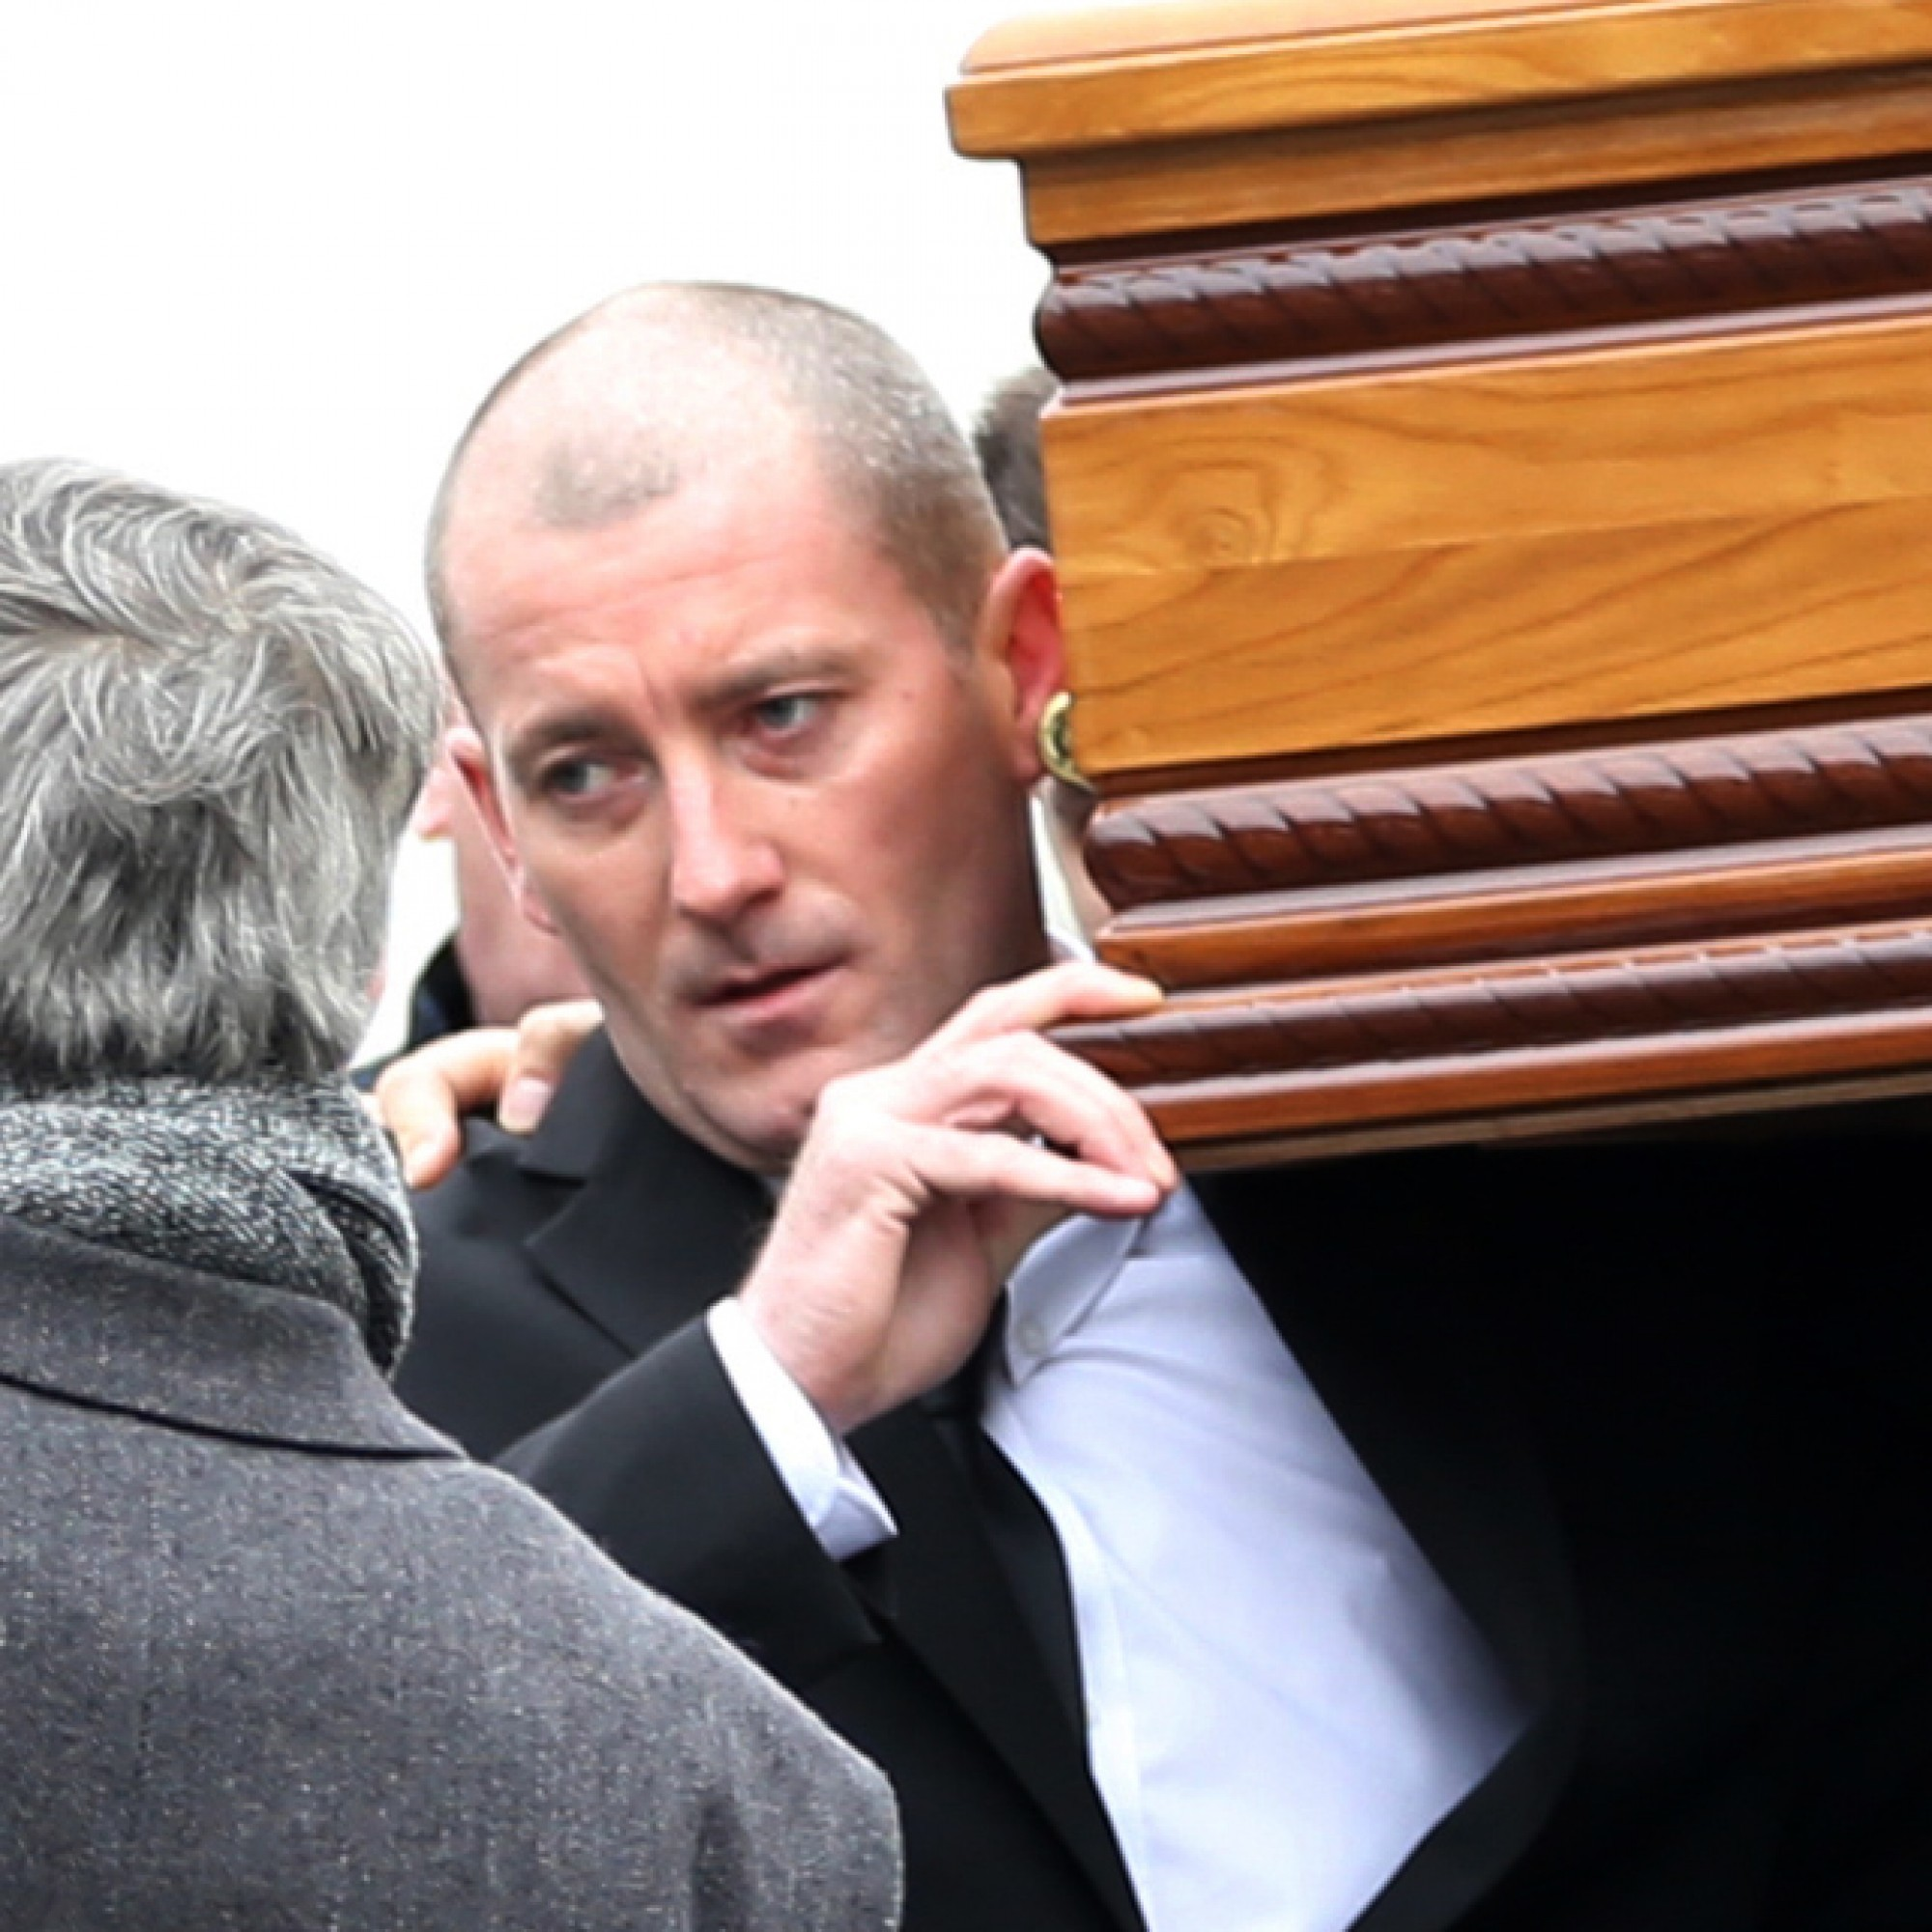 Gareth Hutch: The seventh victim in a vicious war between two gangland families